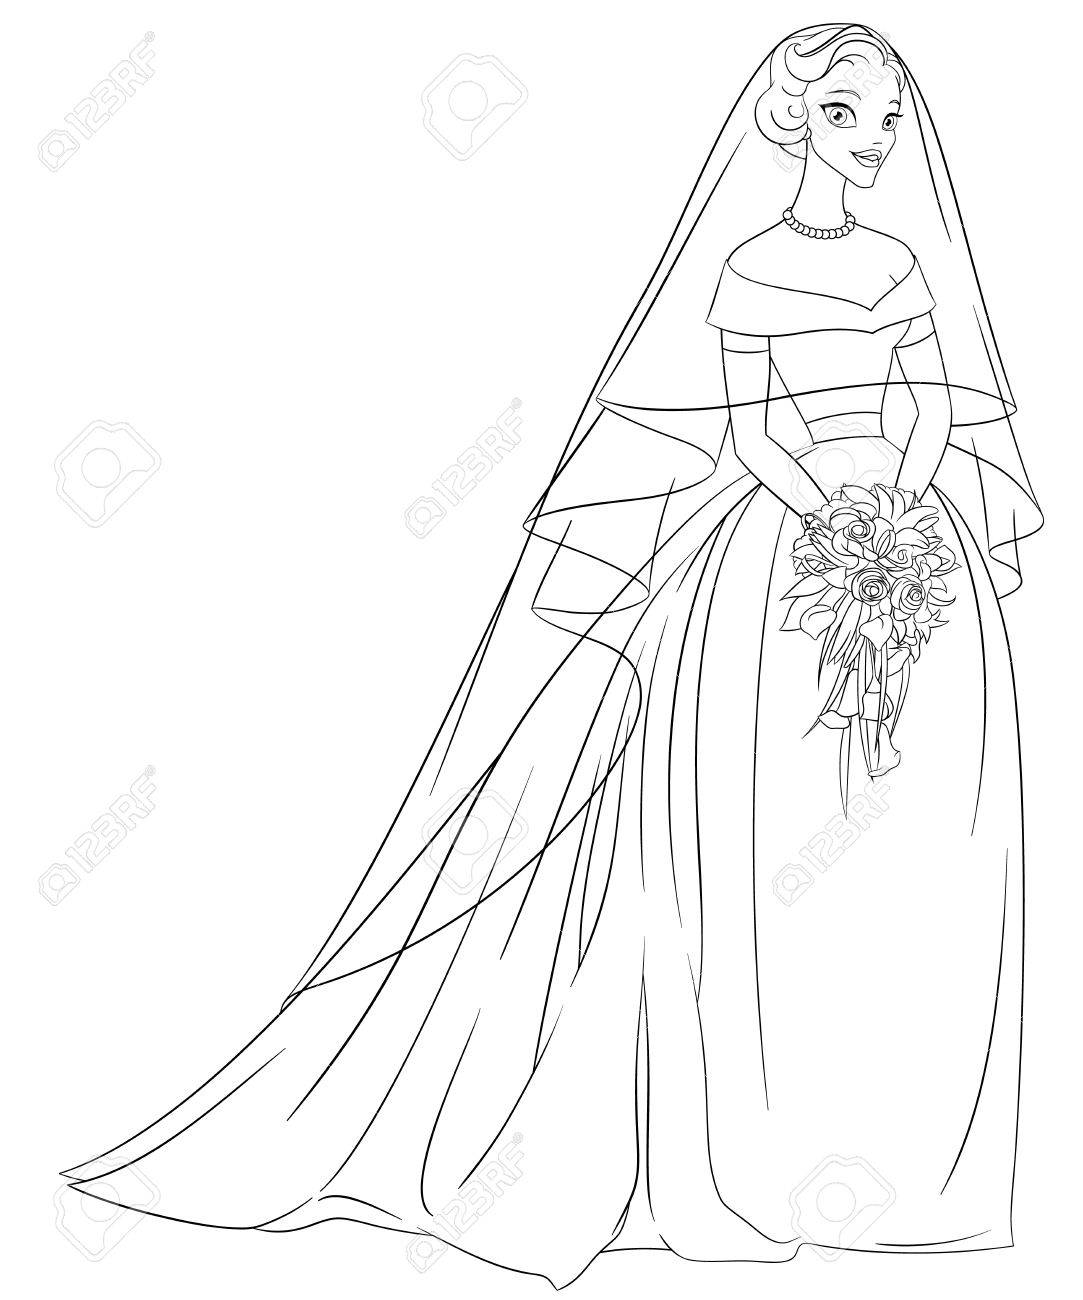 Outlined Bride With Veil And Bouquet  Print For The Coloring